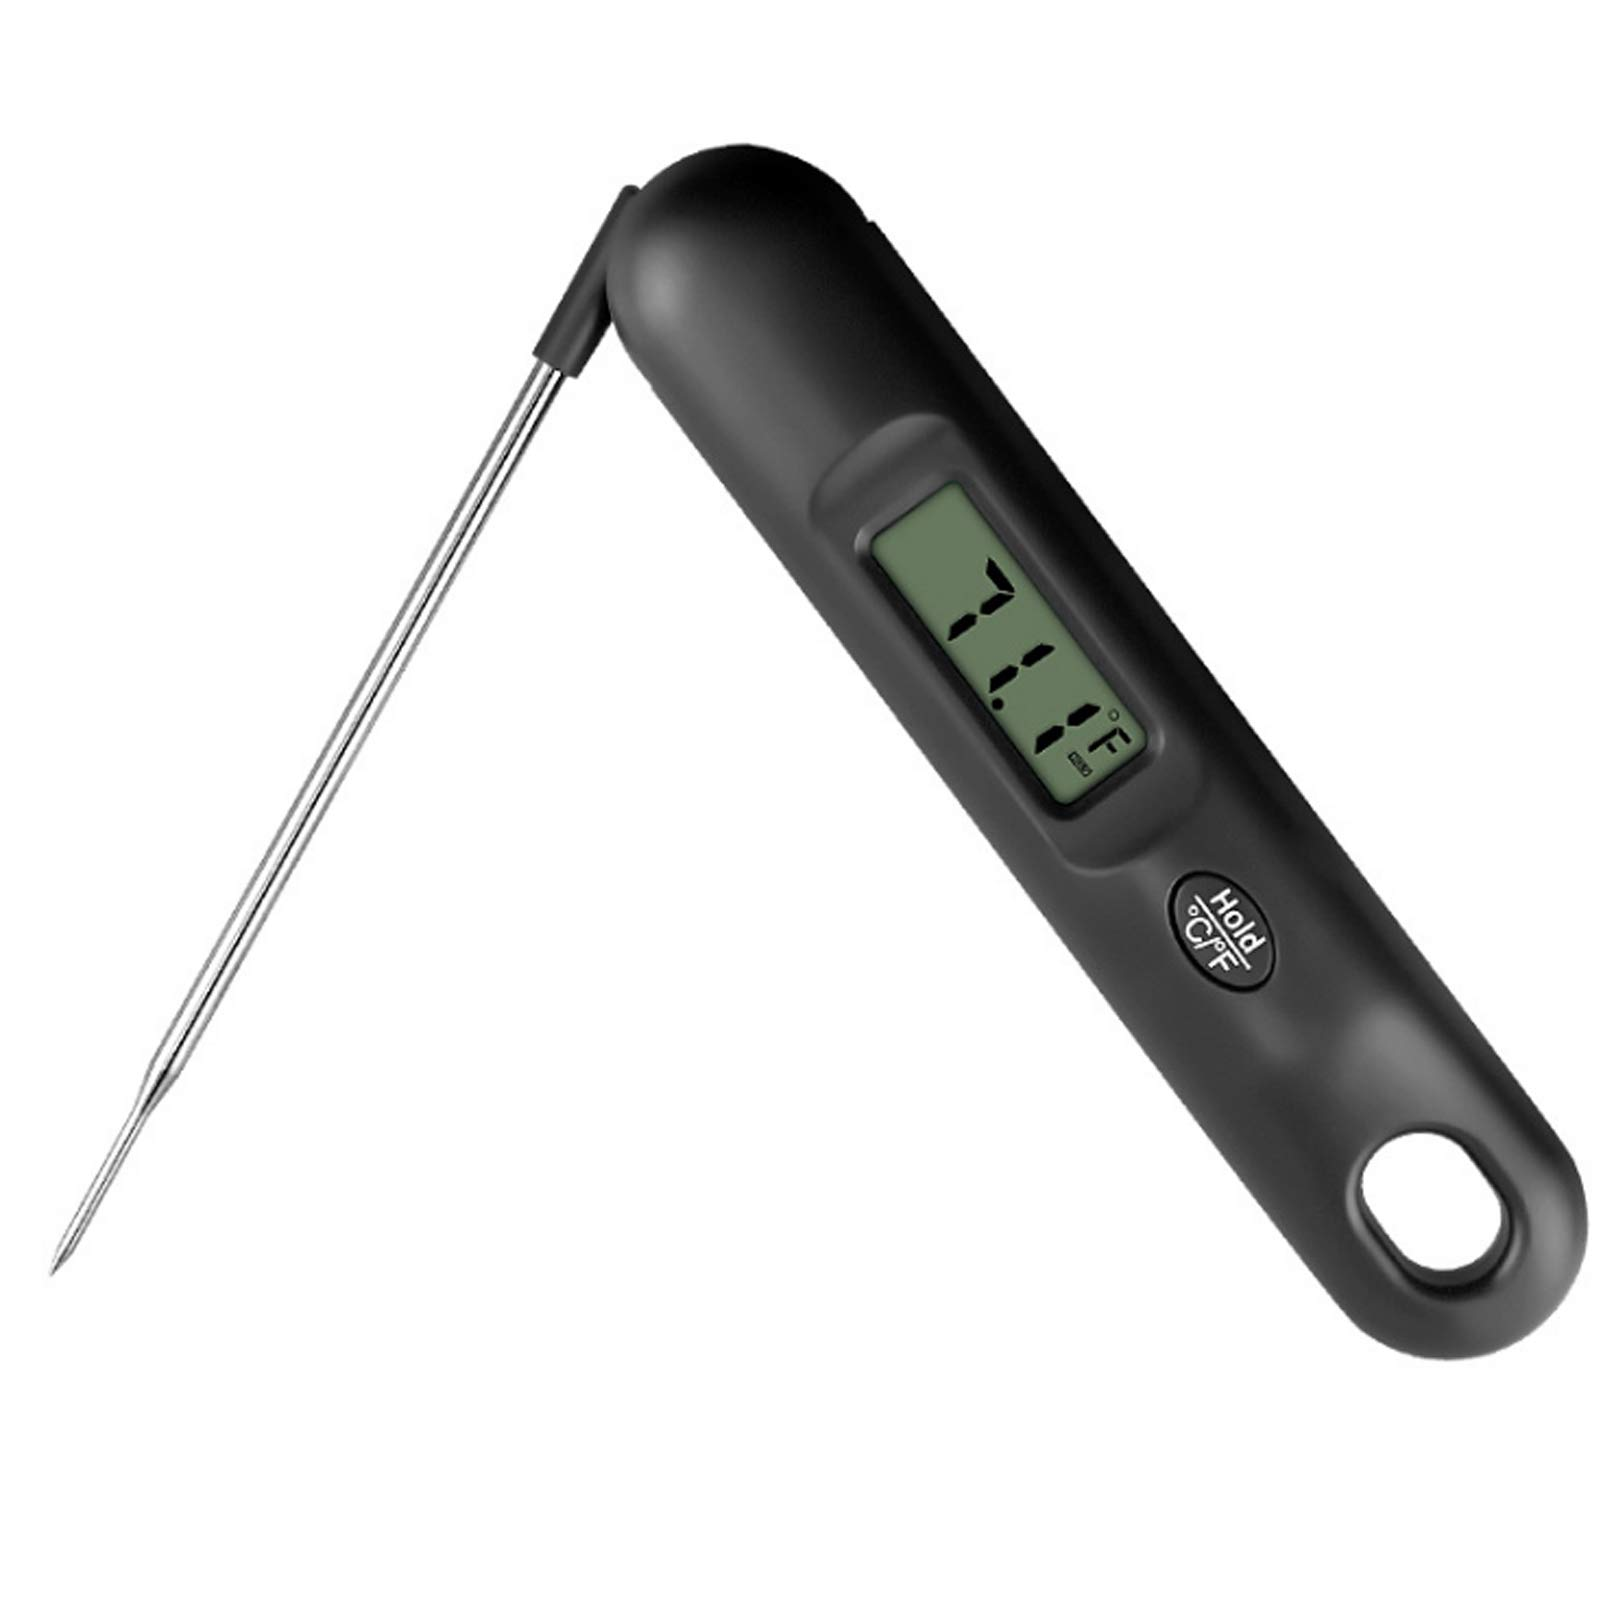 Digital Instant Read Meat Thermometer,Fast & Precise Food Thermometer for Outdoor Cooking Oil Deep Fry and BBQ